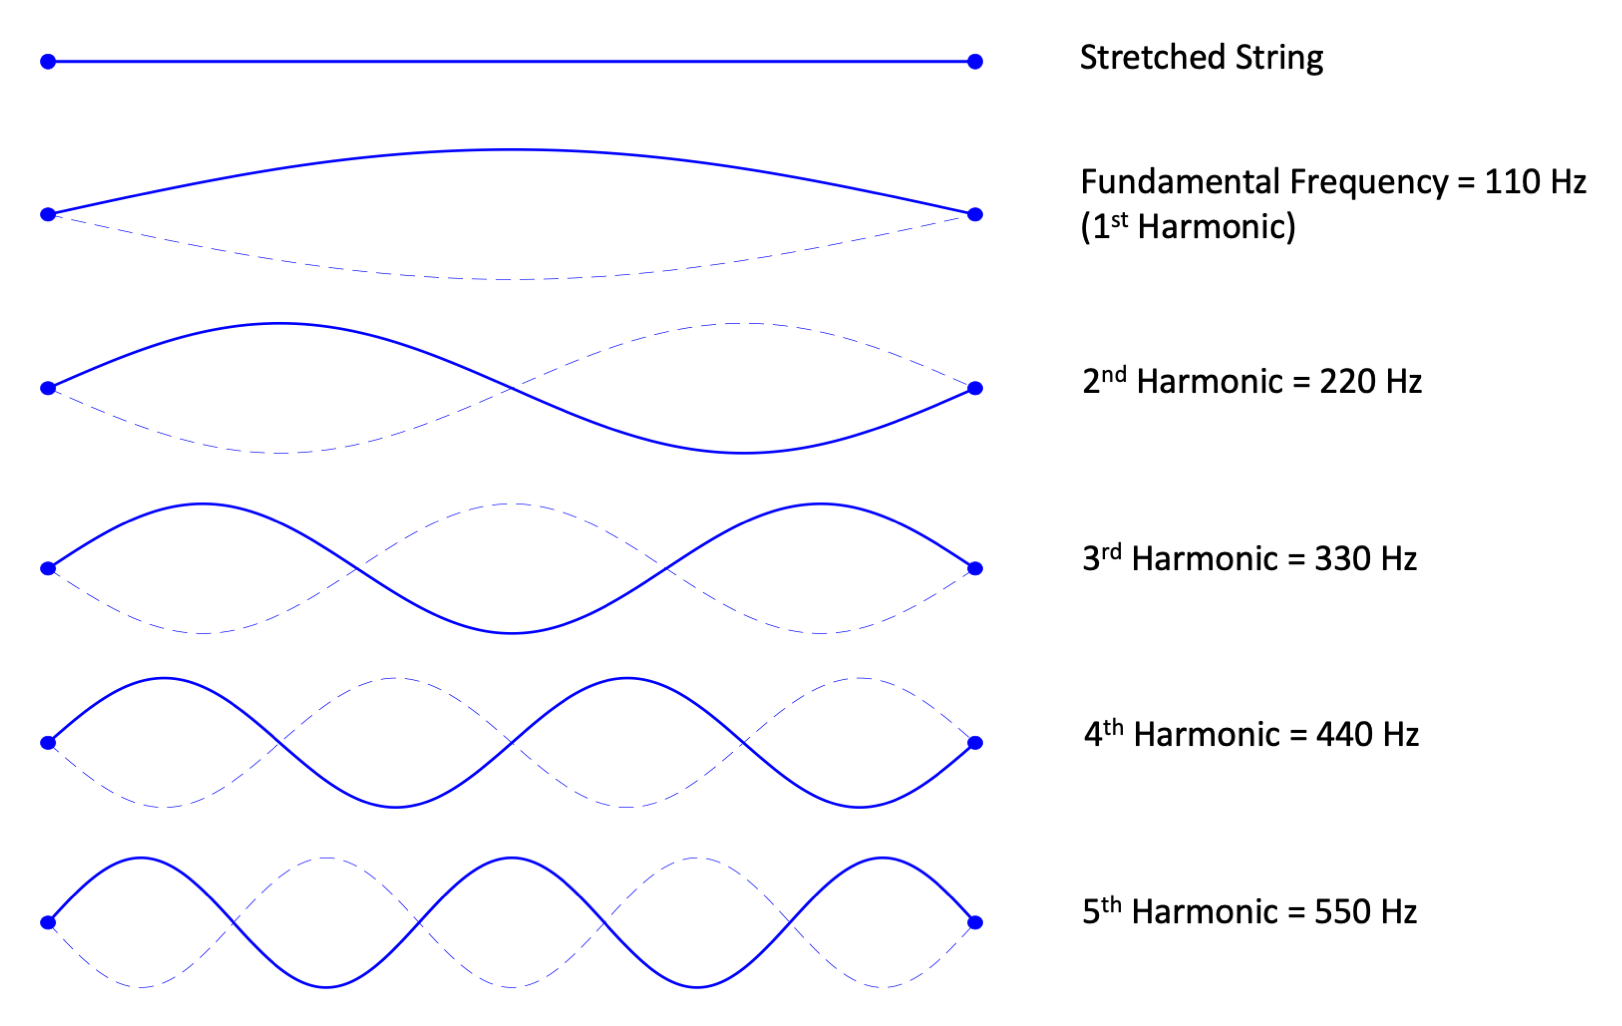 Figure 5.1. Harmonics of a vibrating string with a fundamental frequency of 110 Hz